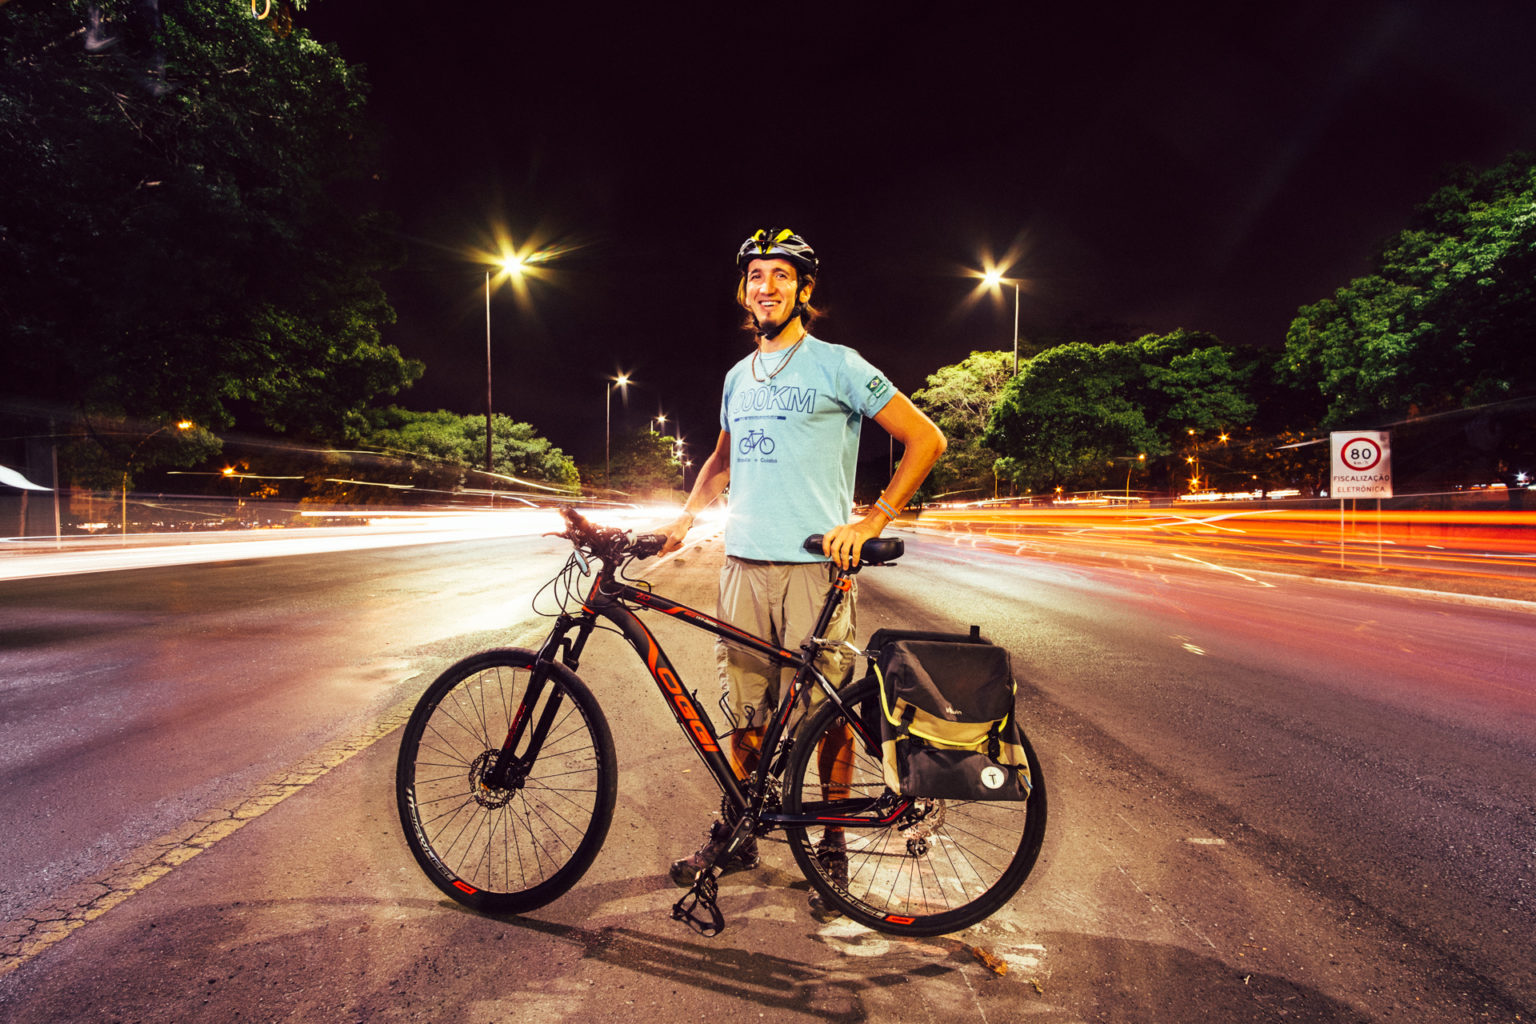 1000km for the environment - Bike, vegetarian, zero waste